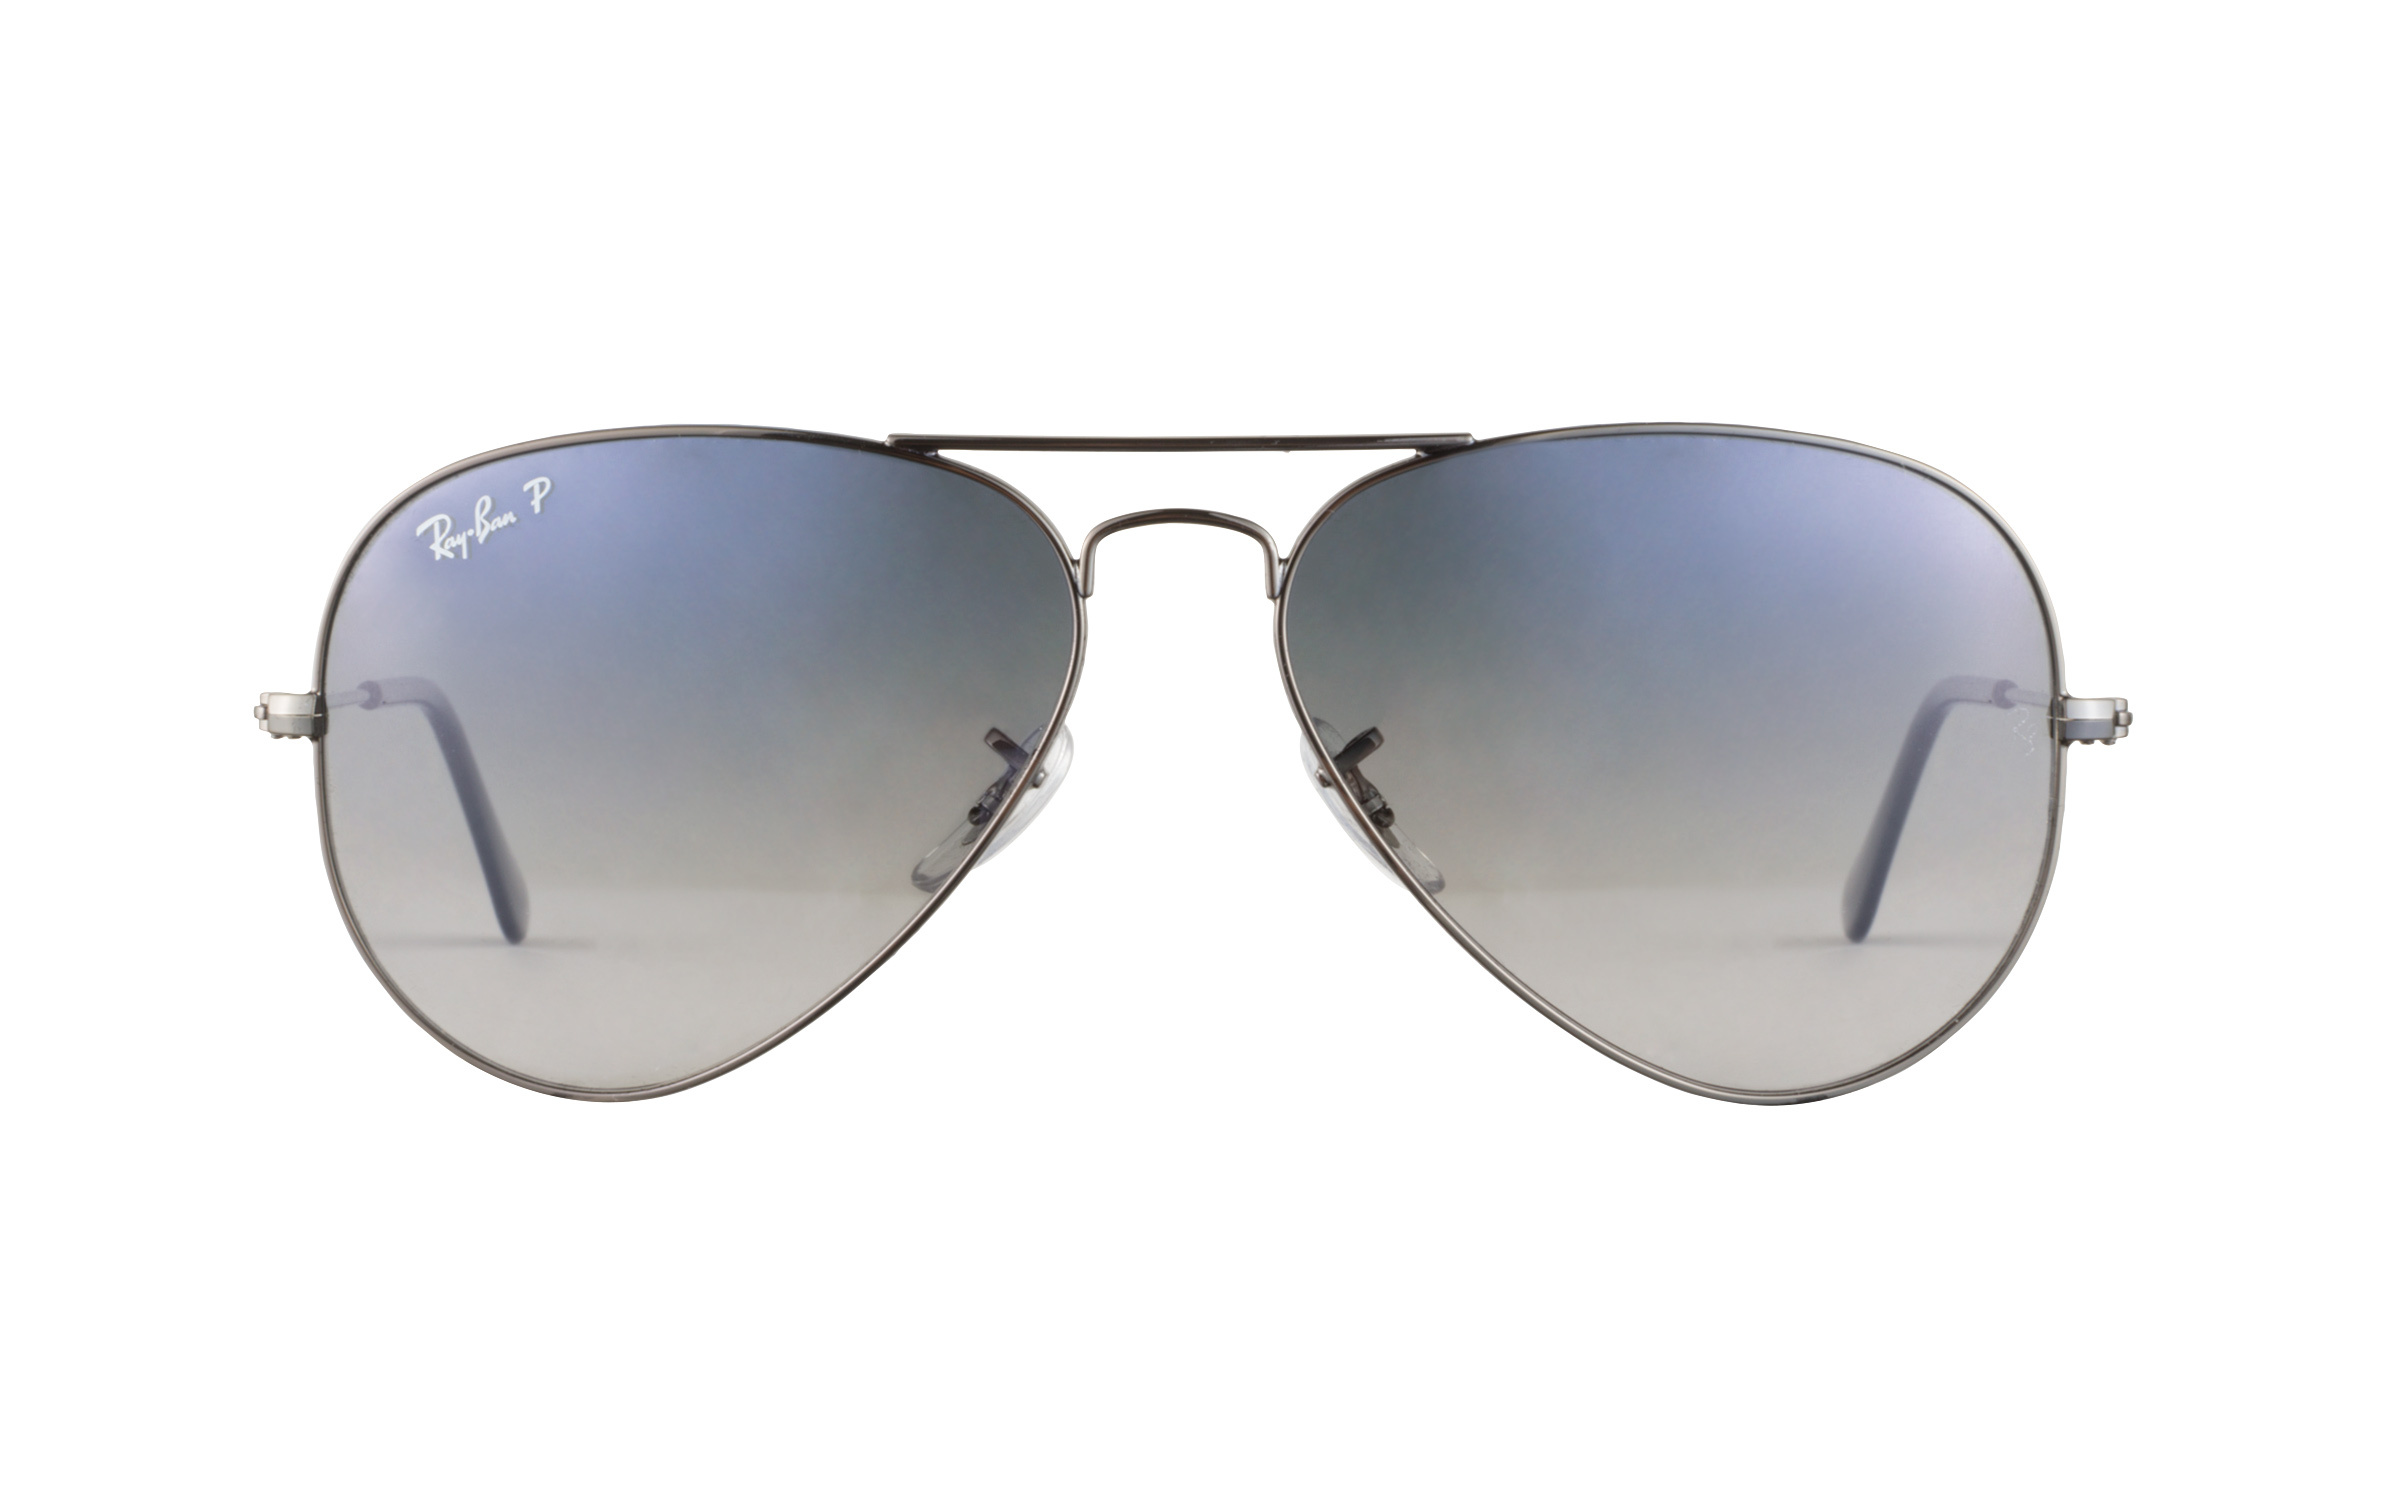 Ray-Ban RB3025 004 78 58 Sunglasses in Gunmetal Polarized Grey/Silver - Online Coastal